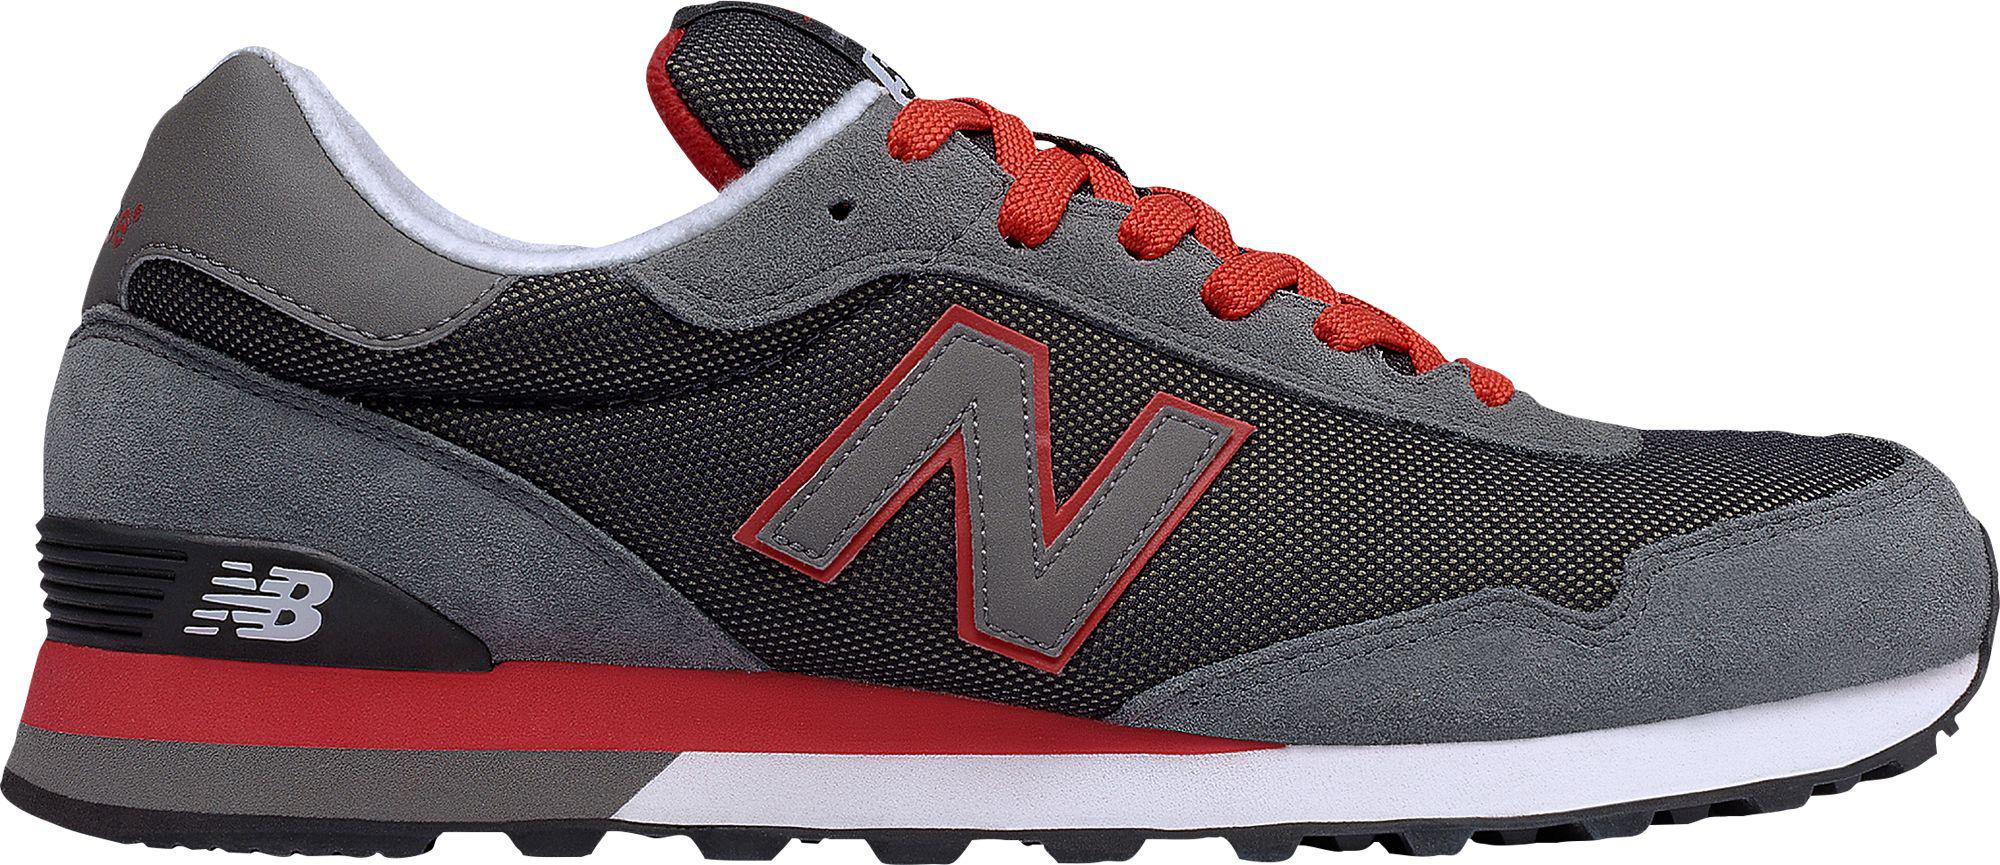 5fe47216e7a9a New Balance 515 Casual Shoes in Gray for Men - Lyst